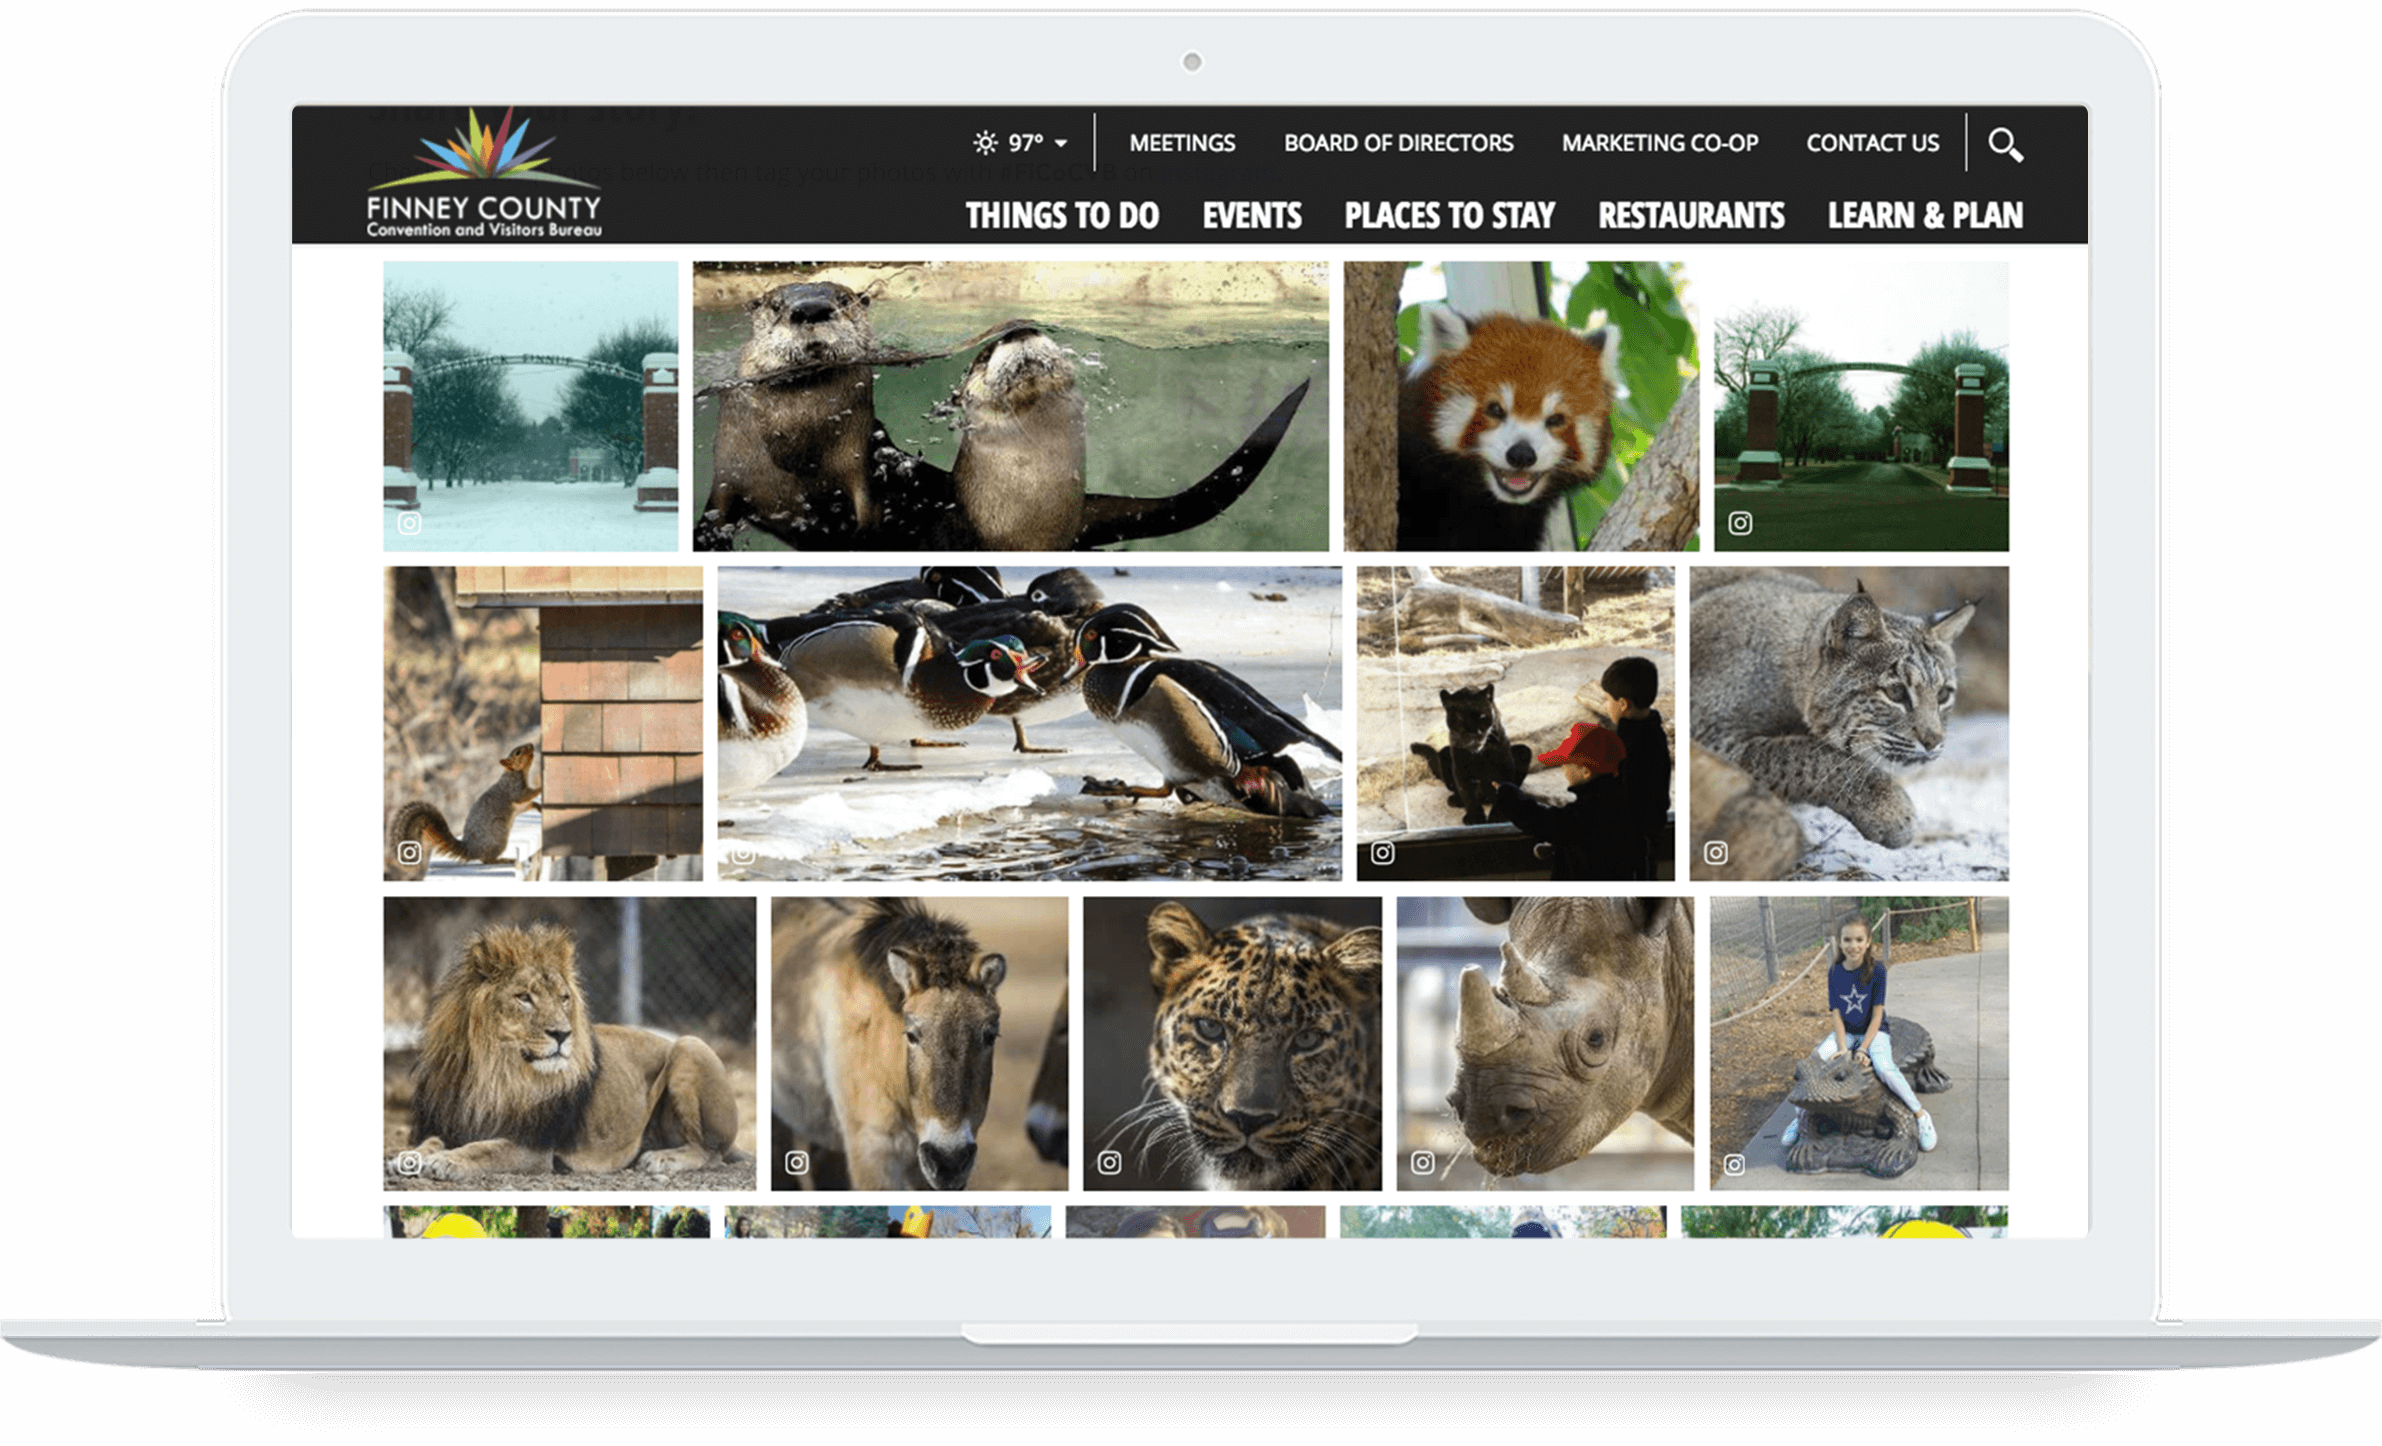 Computer screen showing galleries featuring animals on Finney County's website